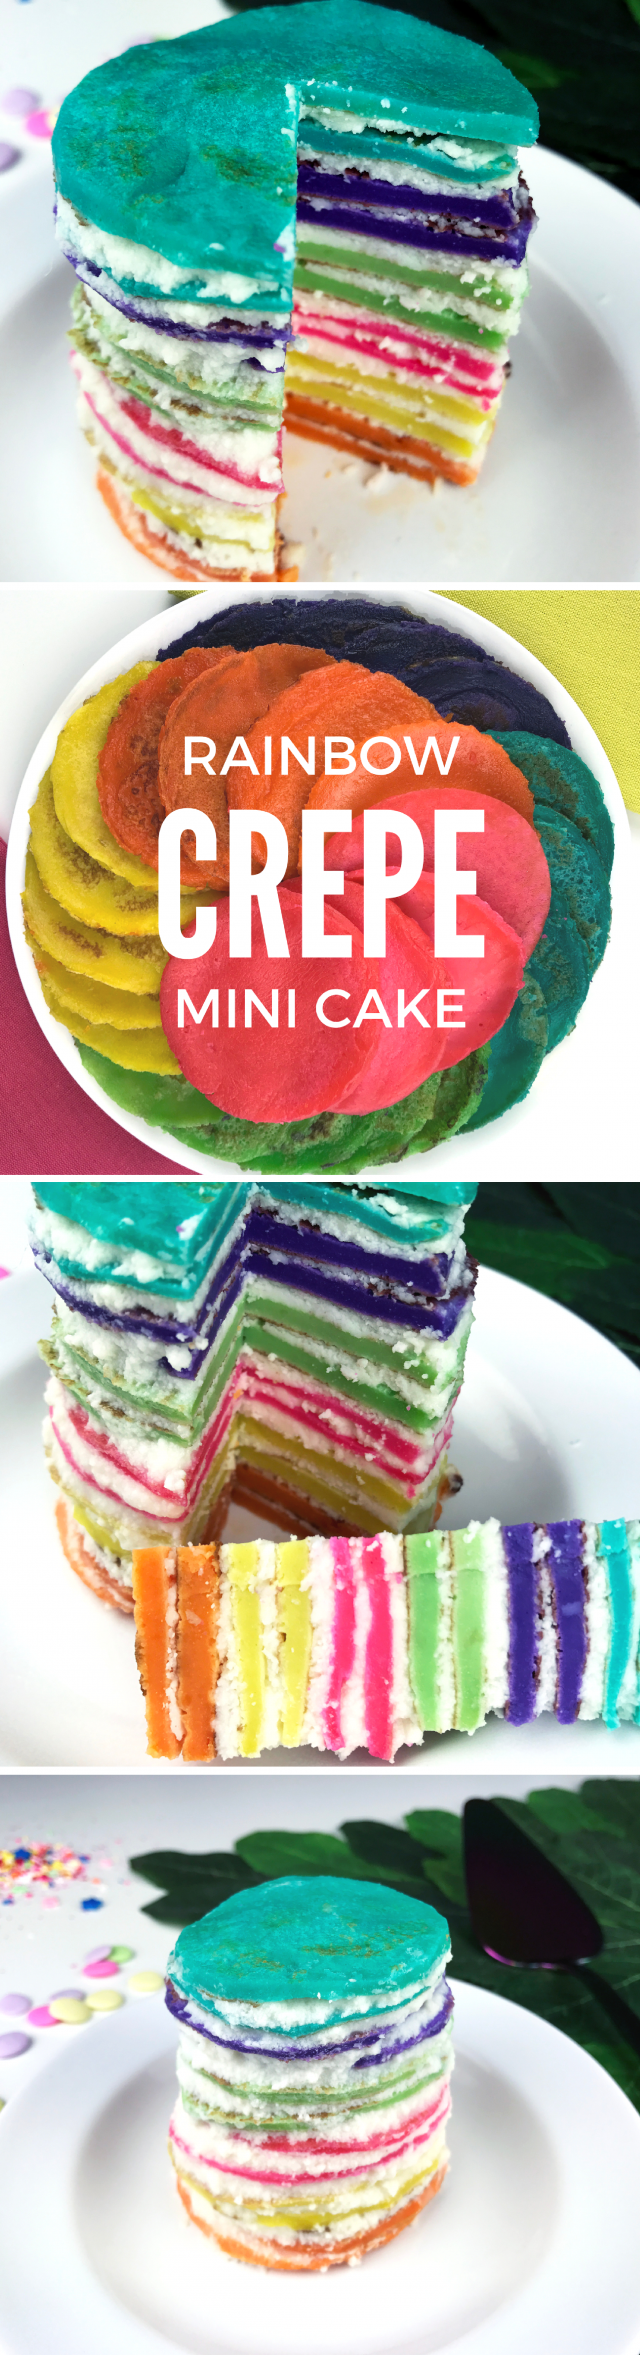 If you've been following Mom Spark for a while, you already know that we have a thing for crepe cakes around here. WE LOVE 'EM! Today's recipe is a fun rainbow crepe cake full of delicious whipped cream.